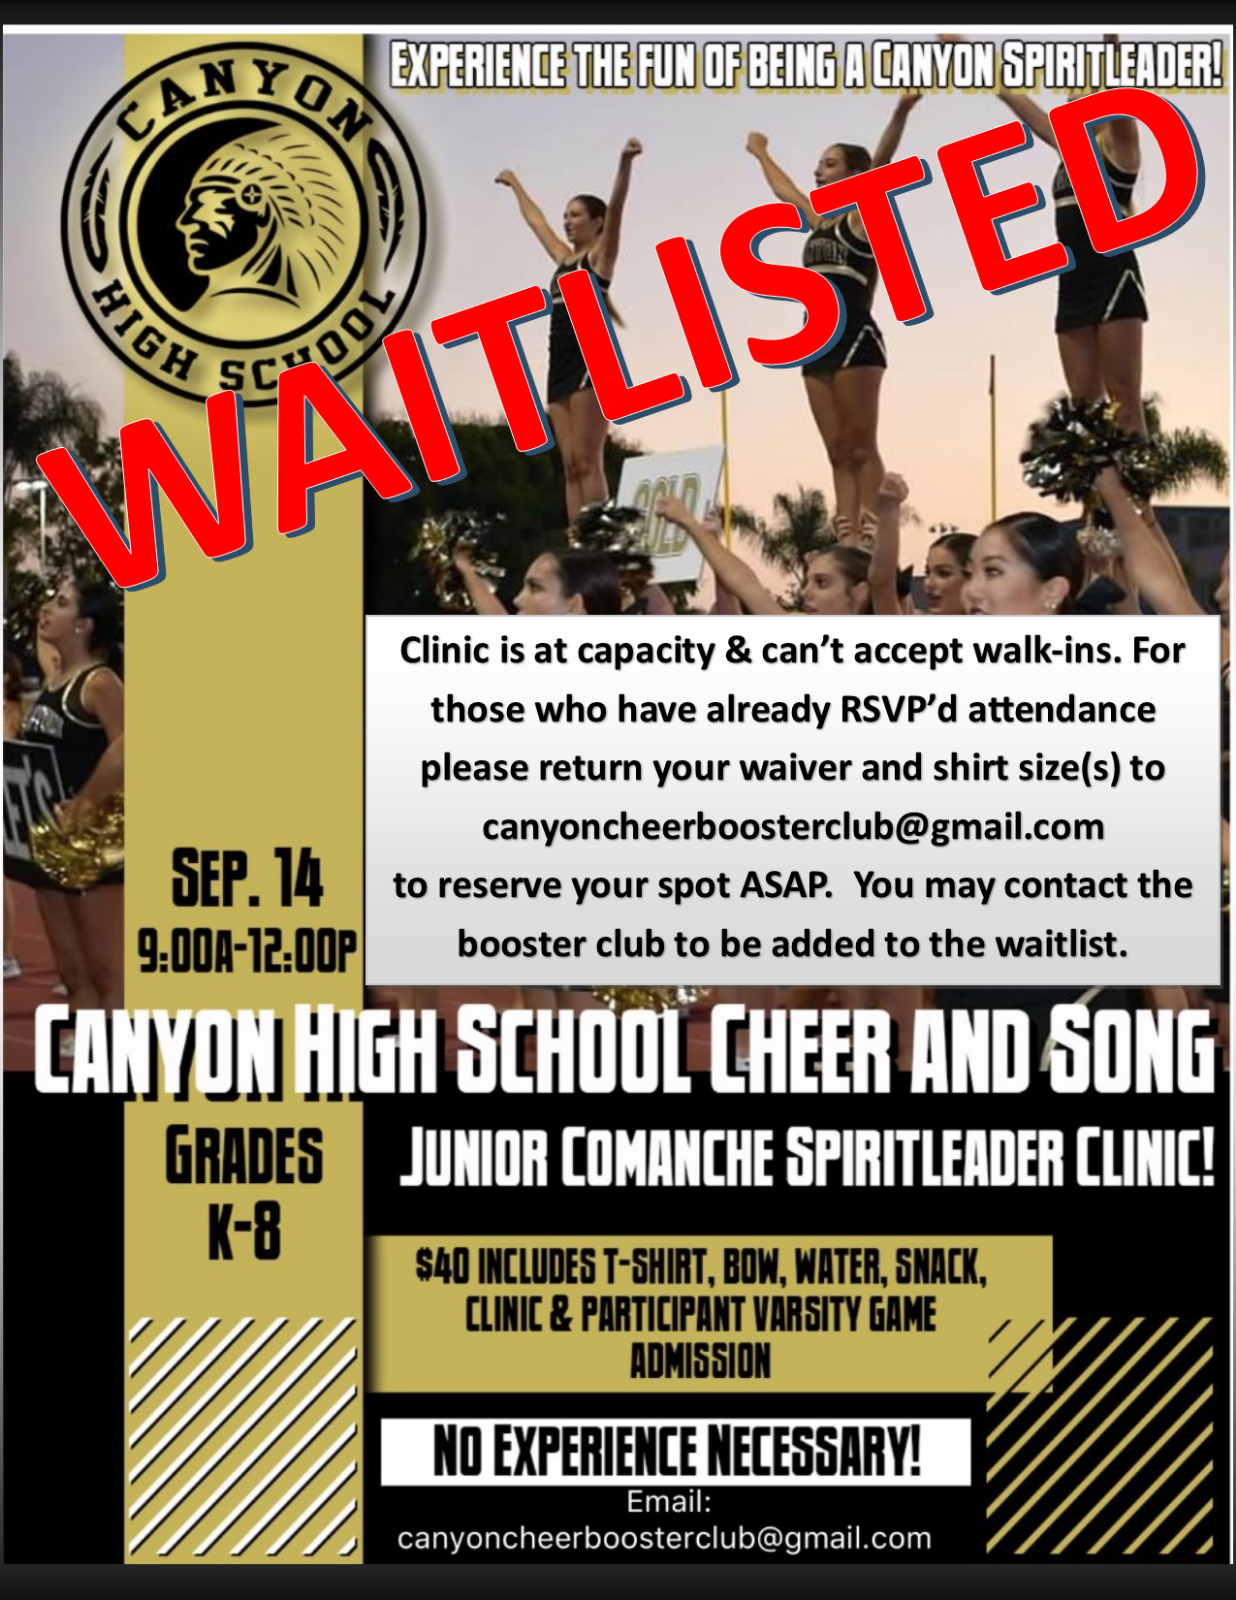 Junior Comanche Spirtleader Clinic Saturday, September 14th